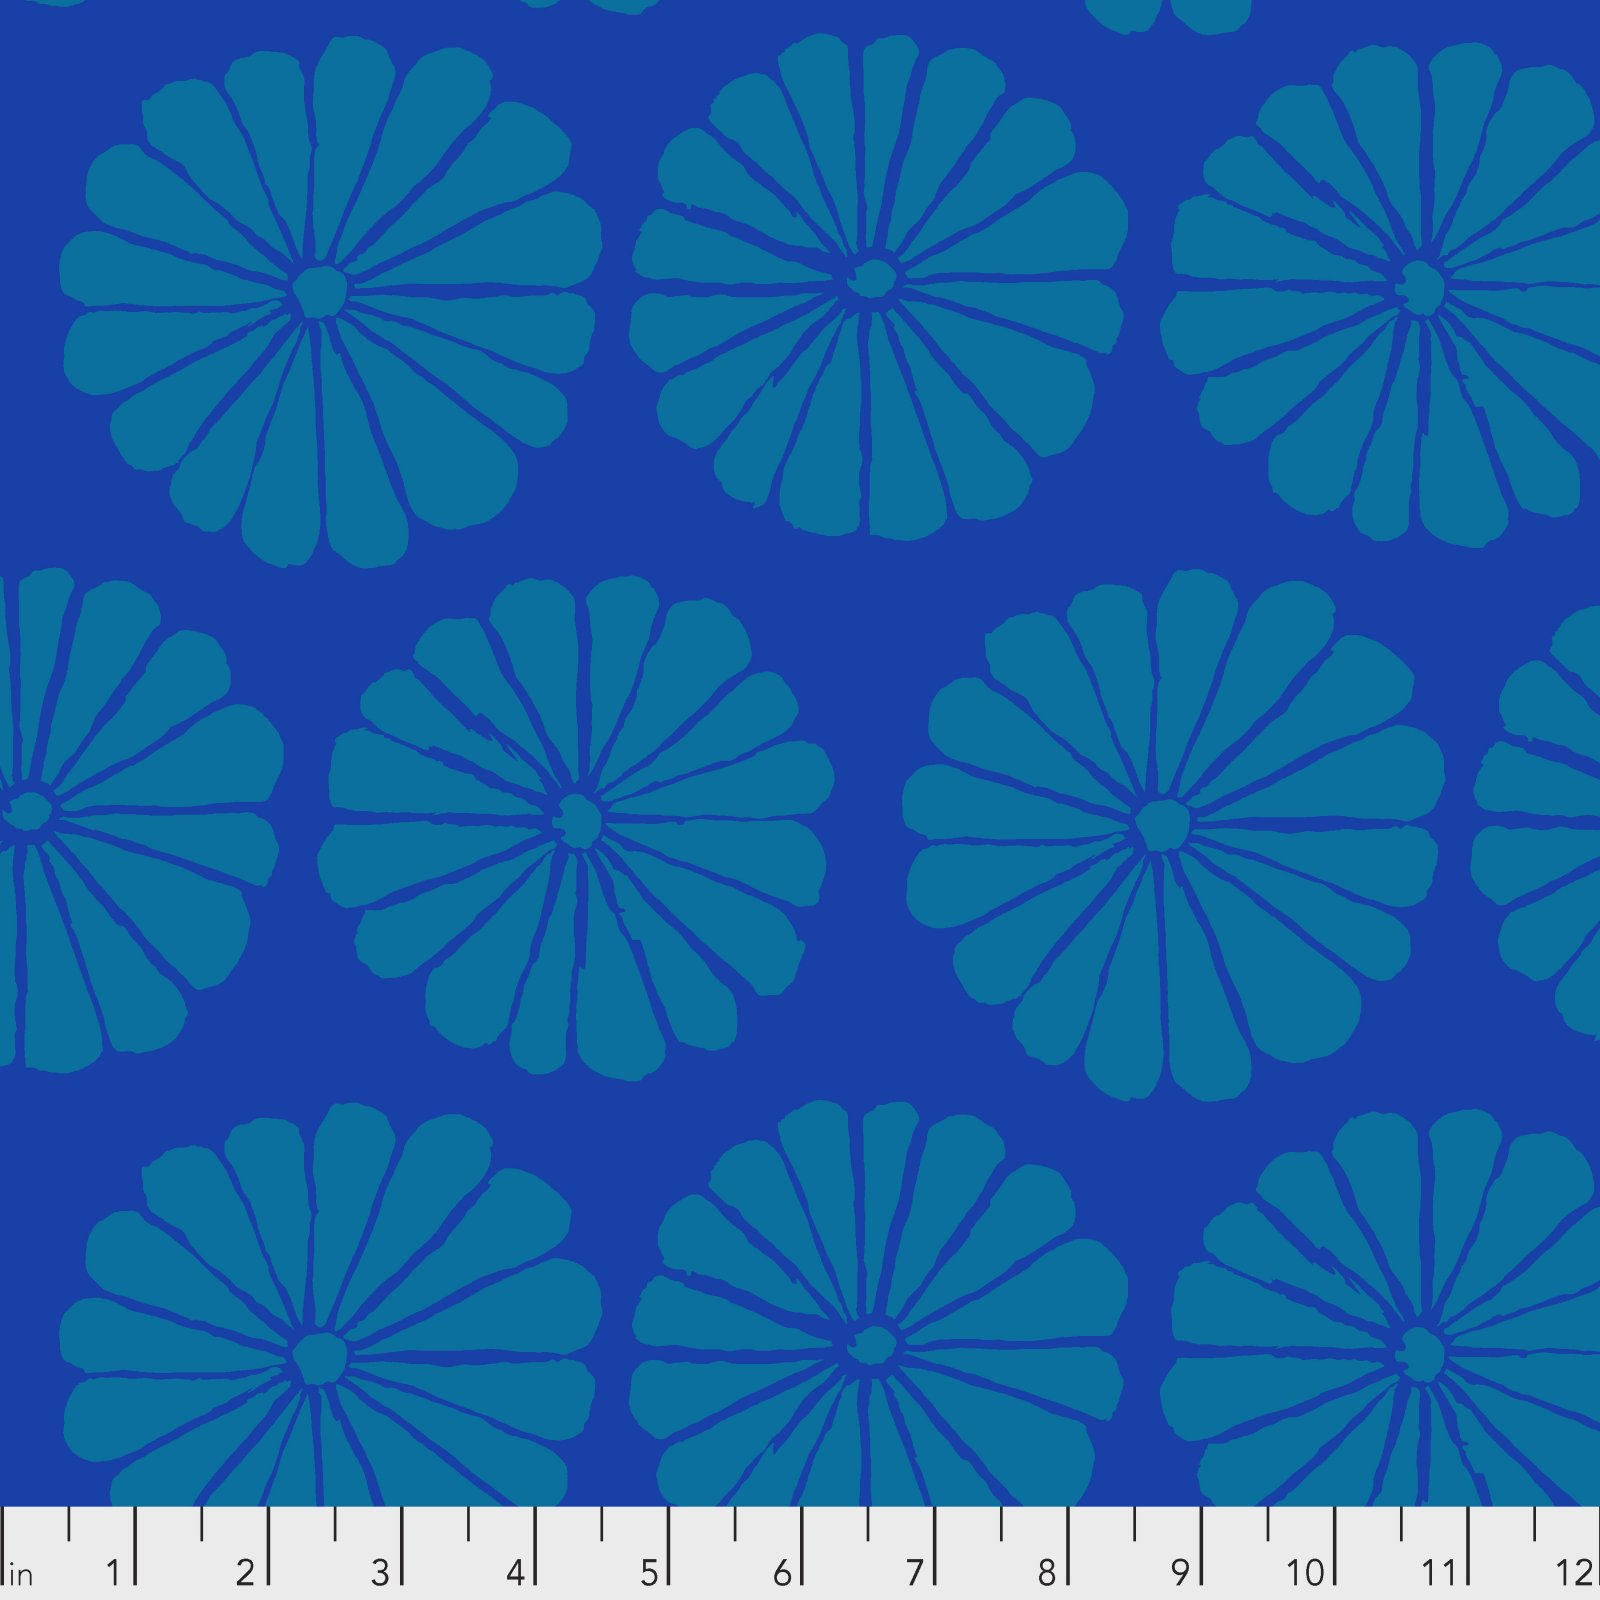 PWGP183.BLUE - Damask Flower